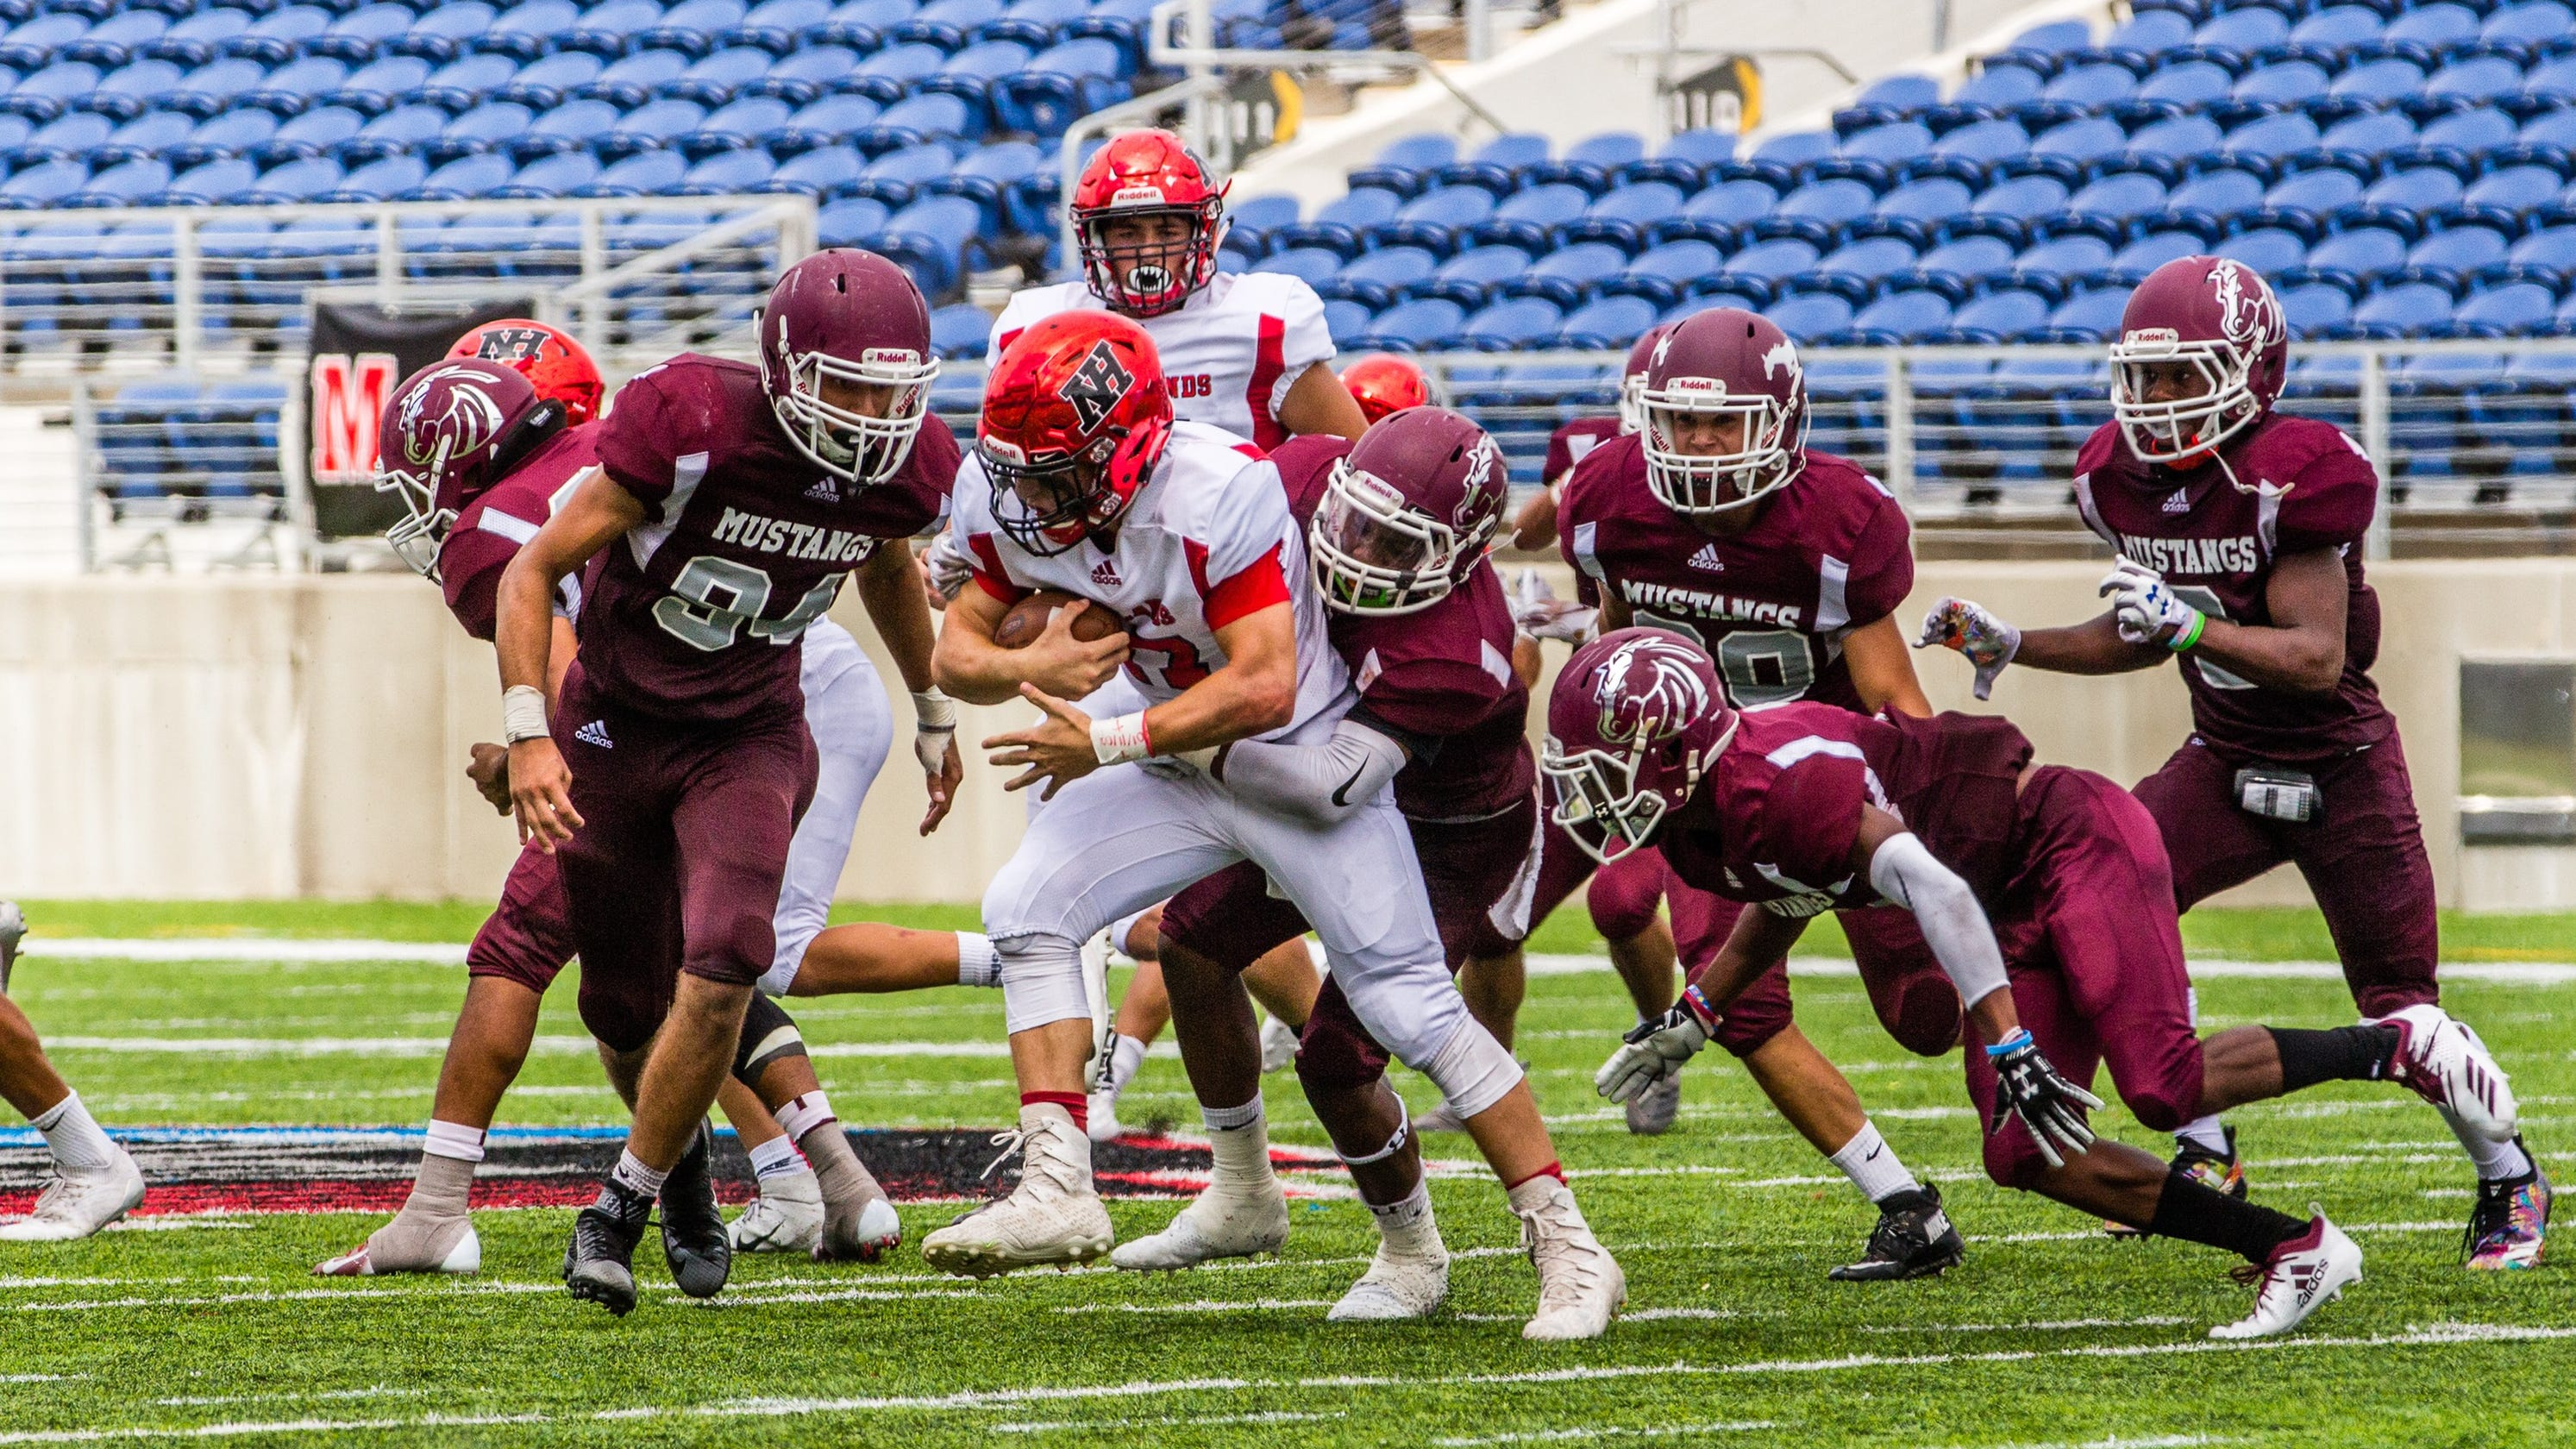 NJ football  Top moments from across New Jersey in Week 1 cb418f6d5